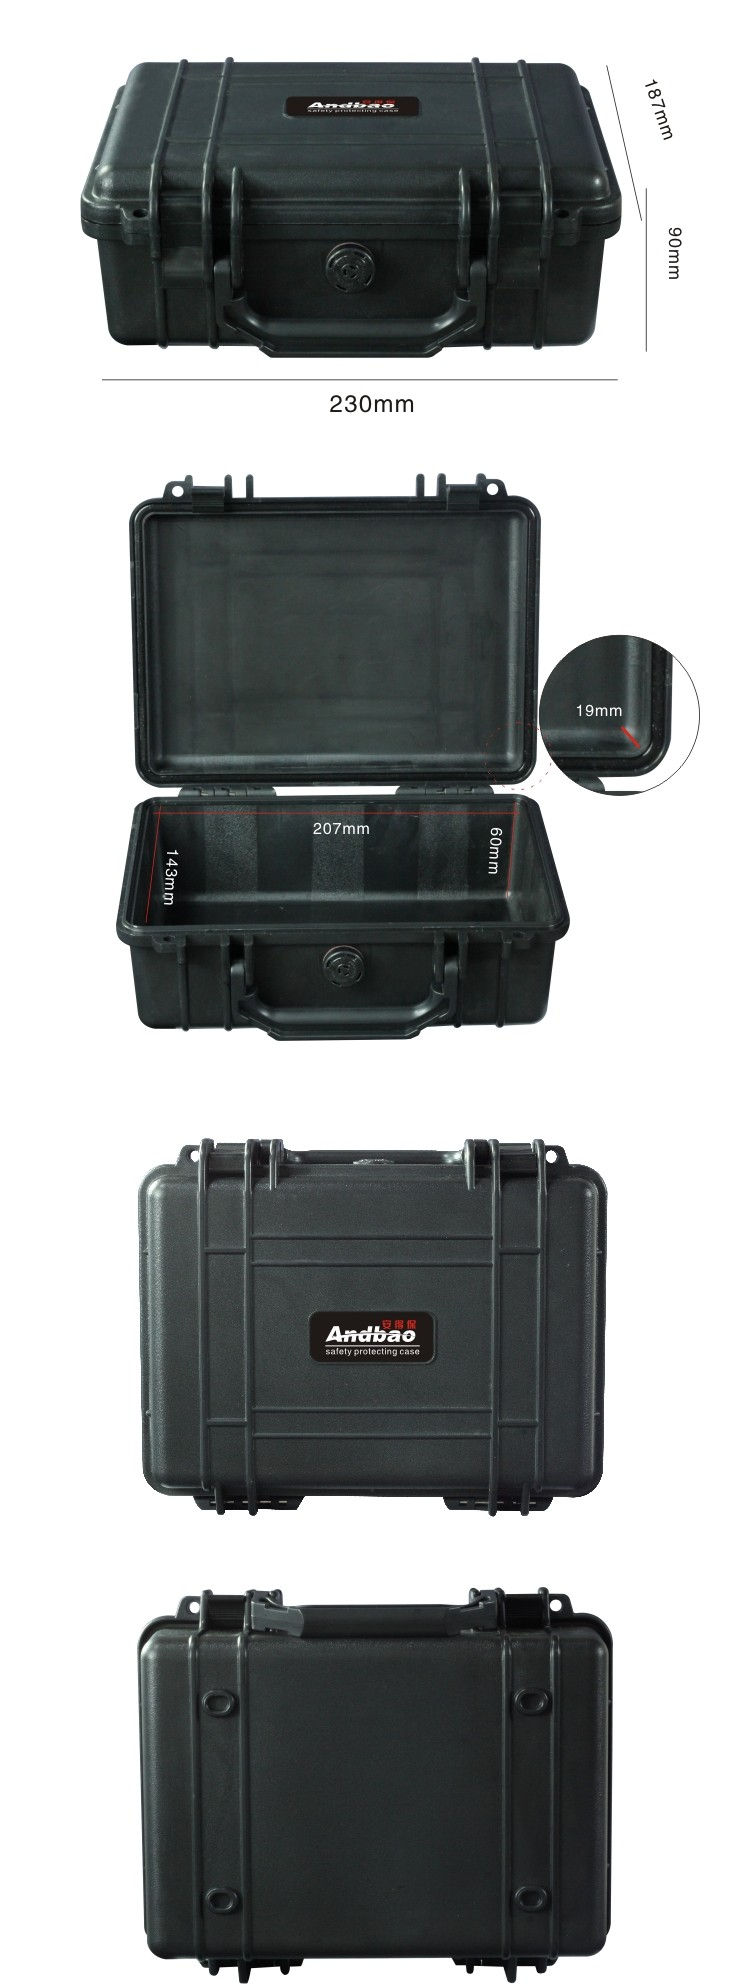 plastic shockproof and watertight case